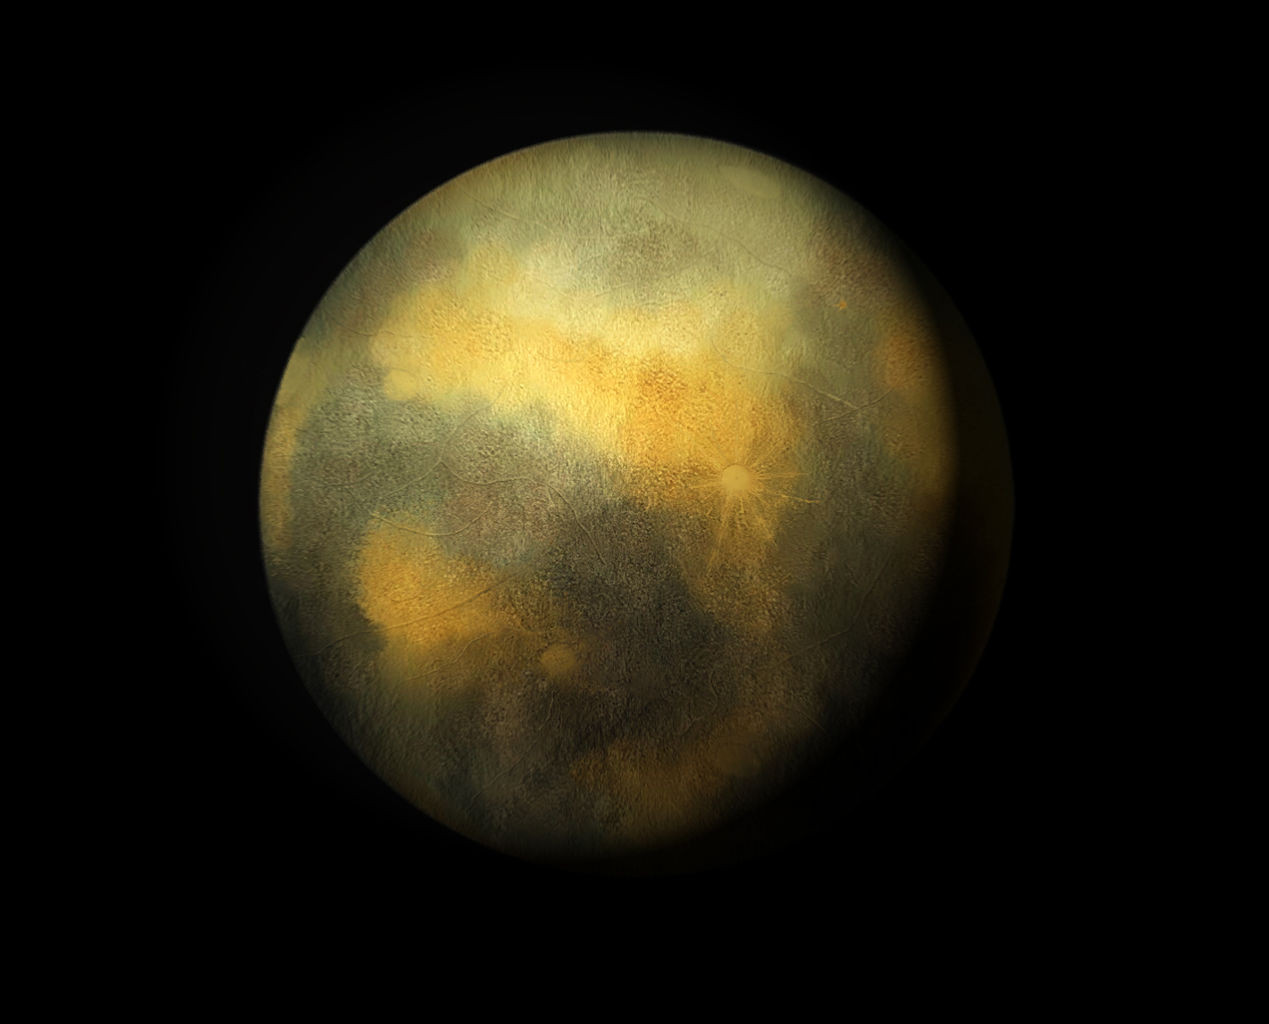 """An artist's rendition of the dark, mysterious and icy orb known as Pluto. This summer, NASA's New Horizons spacecraft should give us a more definitive picture of the so-called """"dwarf planet,"""" discovered by Kansan Clyde Tombaugh."""